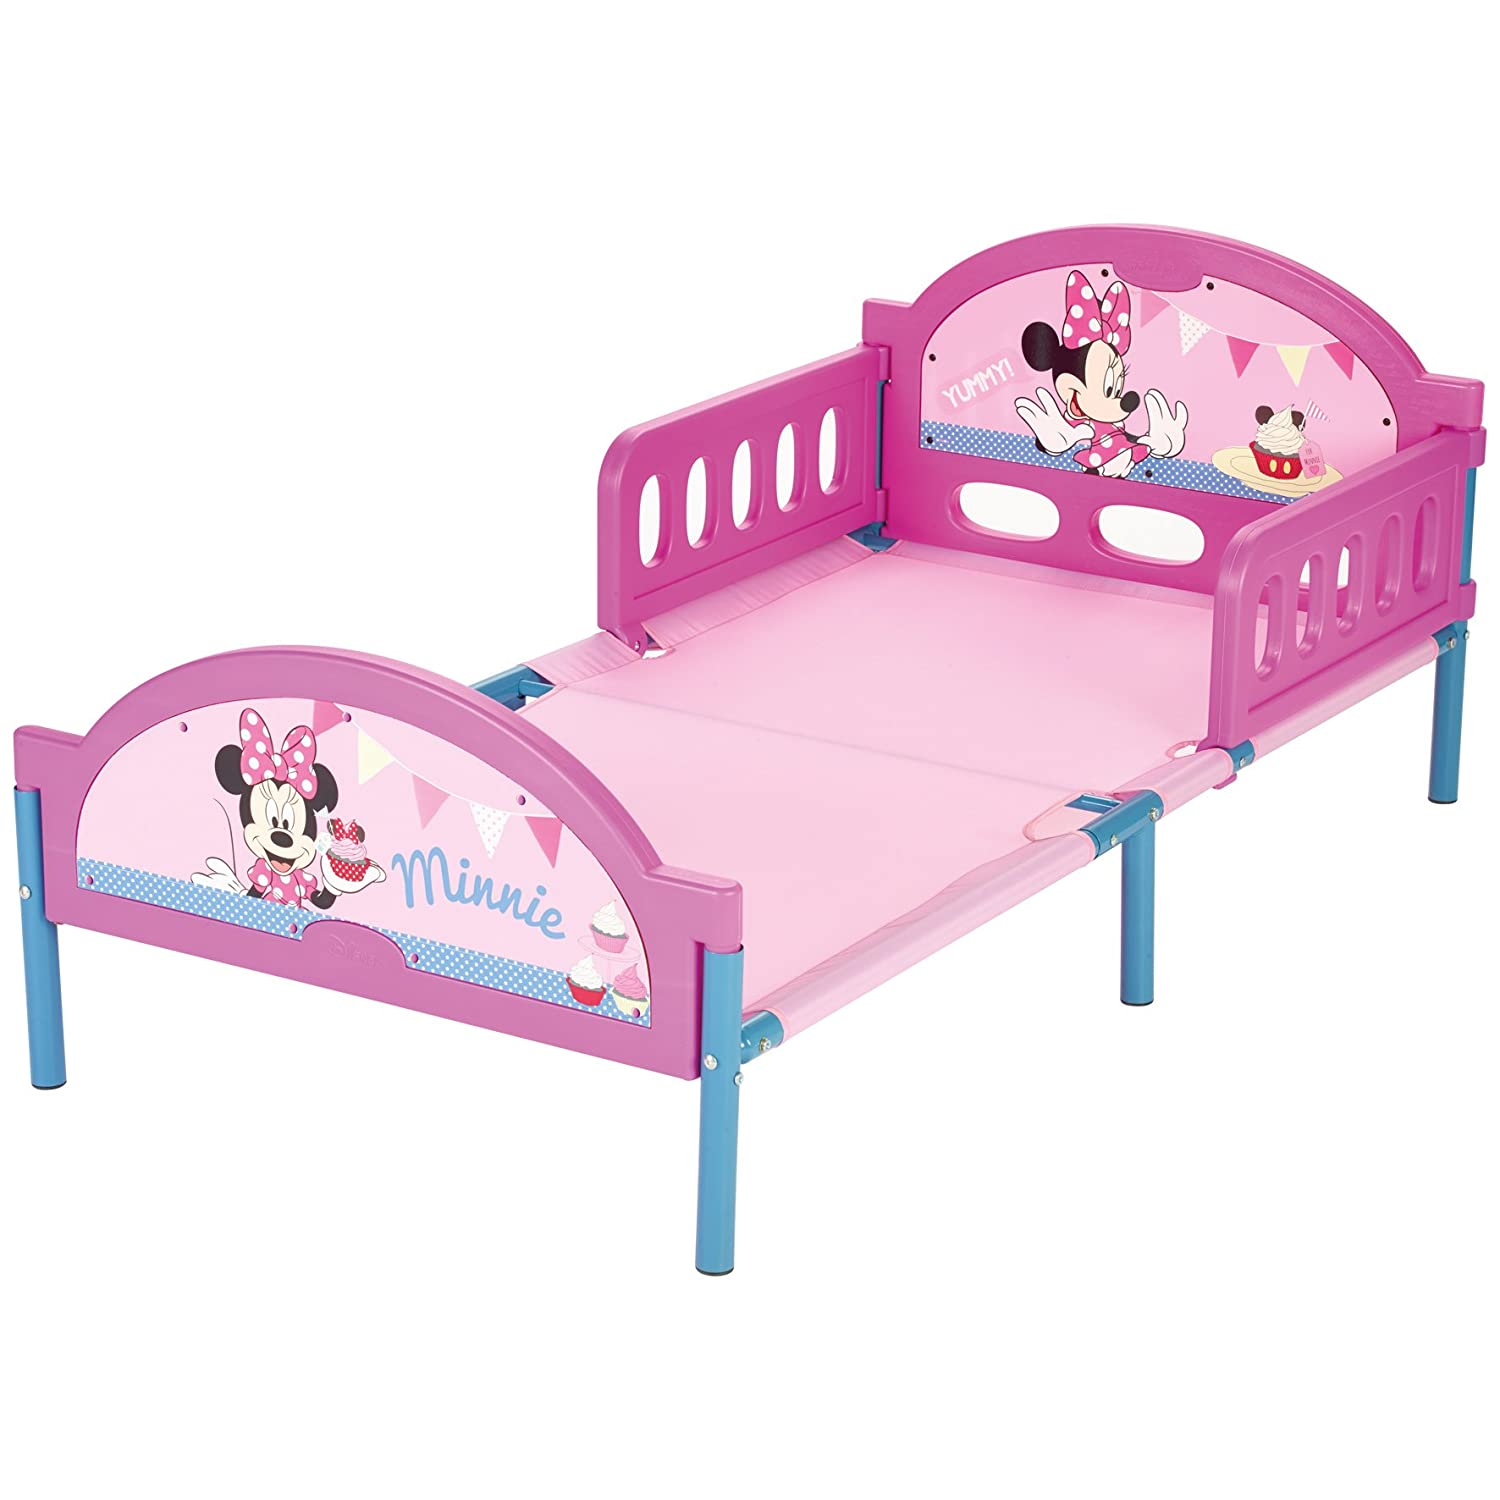 delta children plastic footboard twin bed disney minnie mouse - Minnie Mouse Toddler Bed Frame